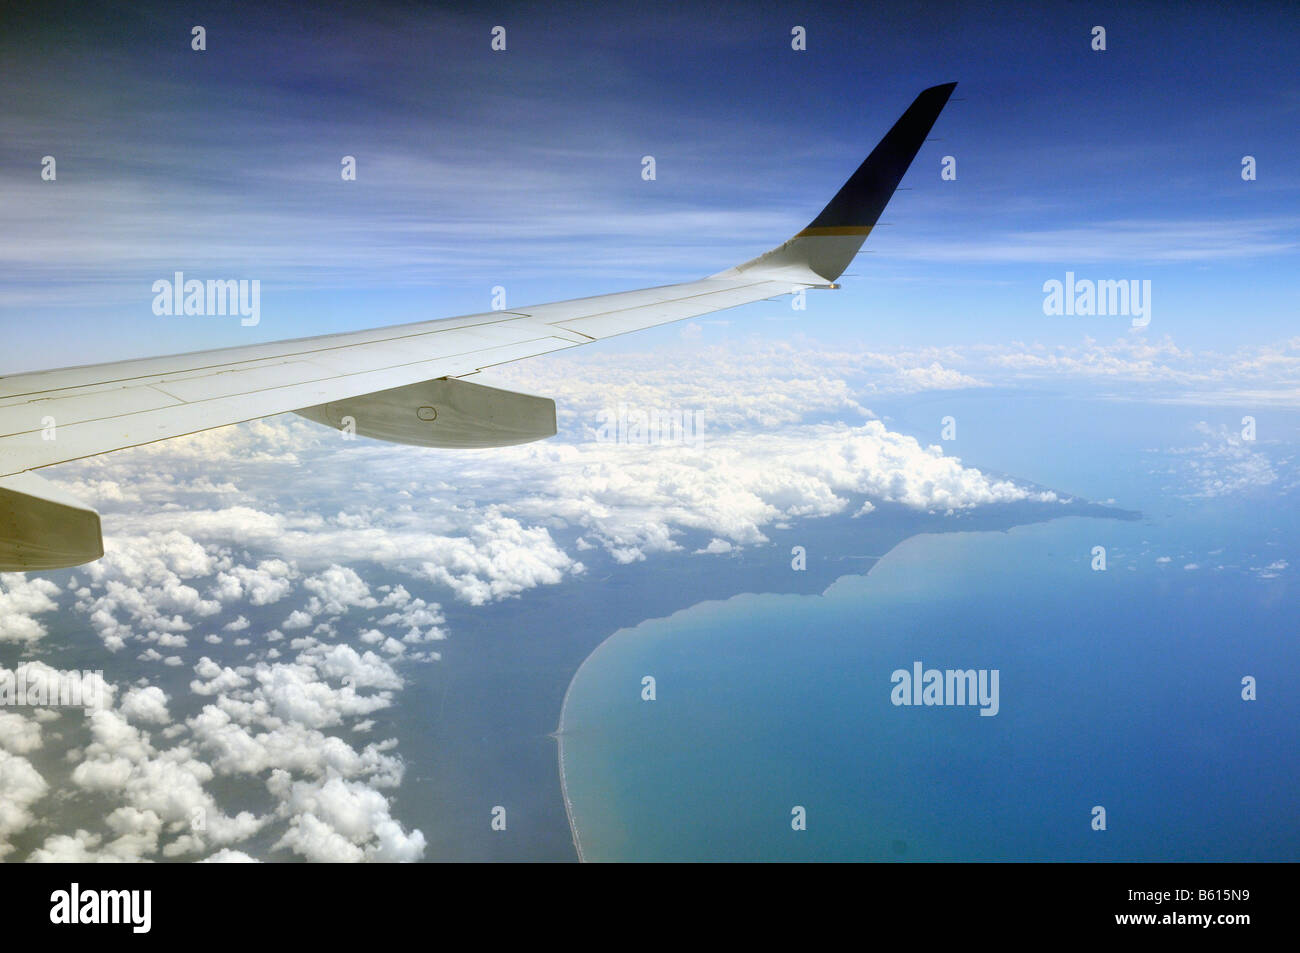 View from an airplane of a Caribbean coast, Nicaragua, Central America - Stock Image